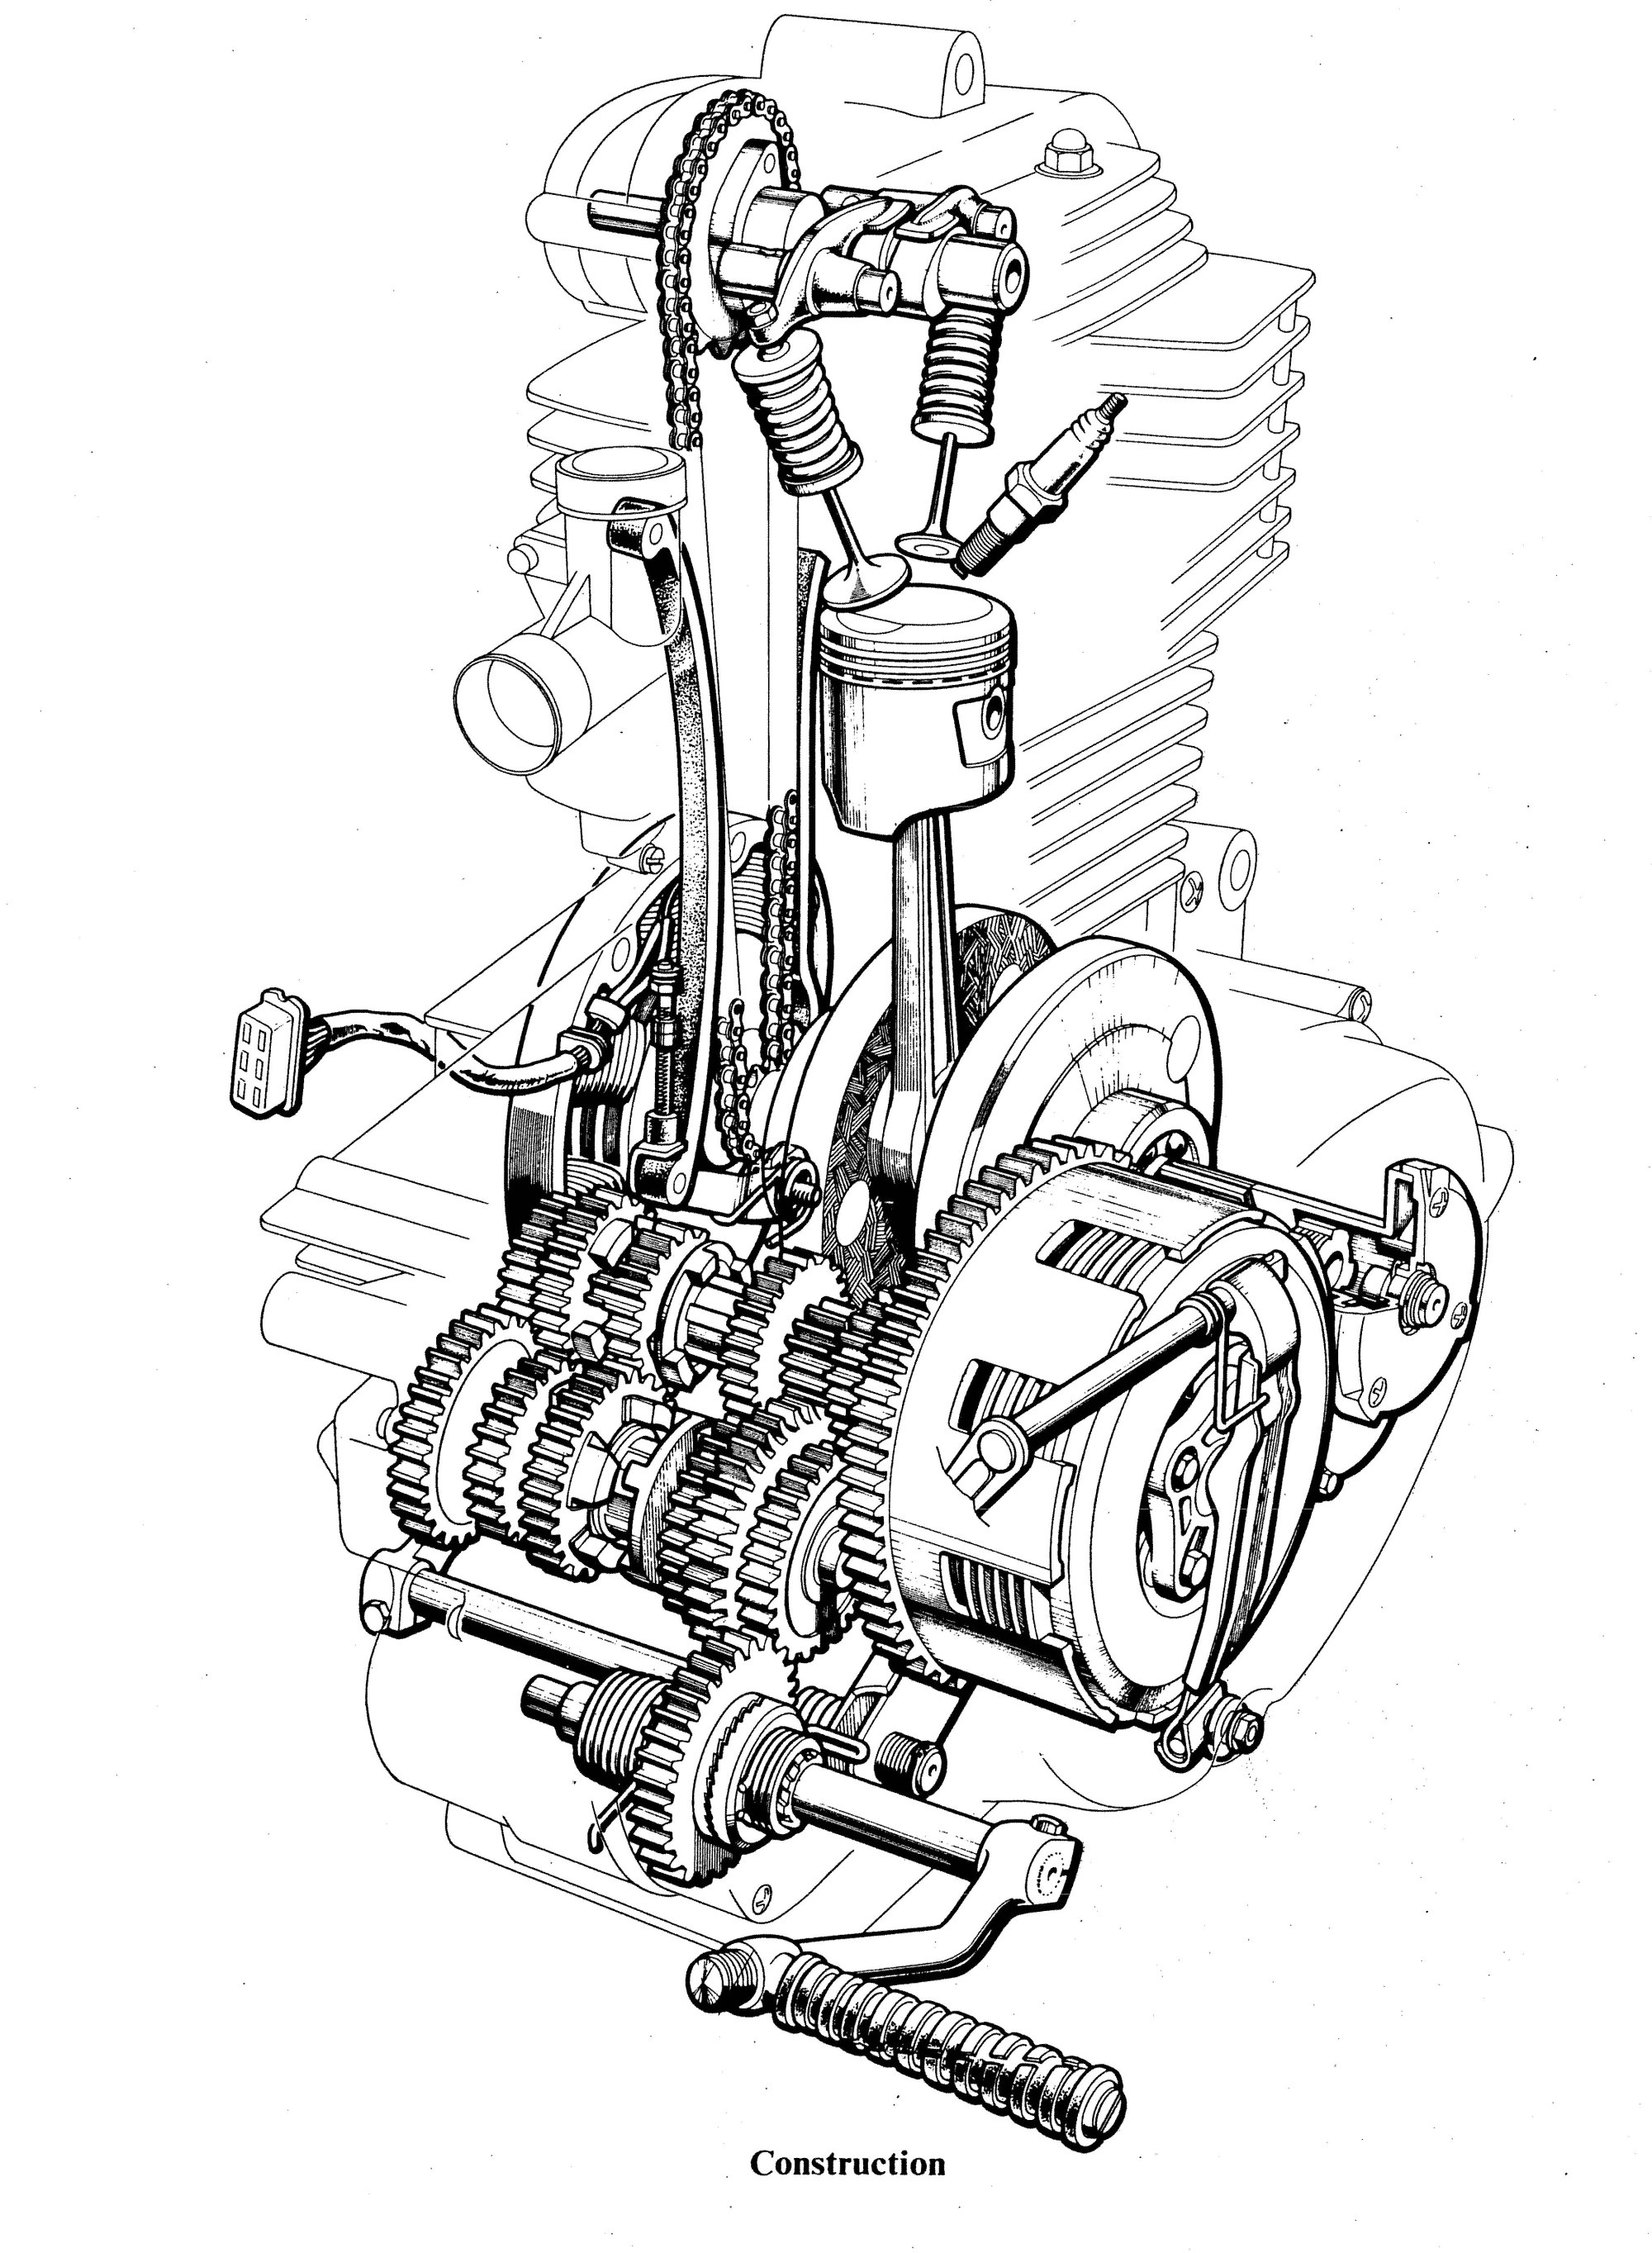 hight resolution of perbedaan honda cb dengan honda cg kataku honda xr 200 2002 honda xr200 engine diagram